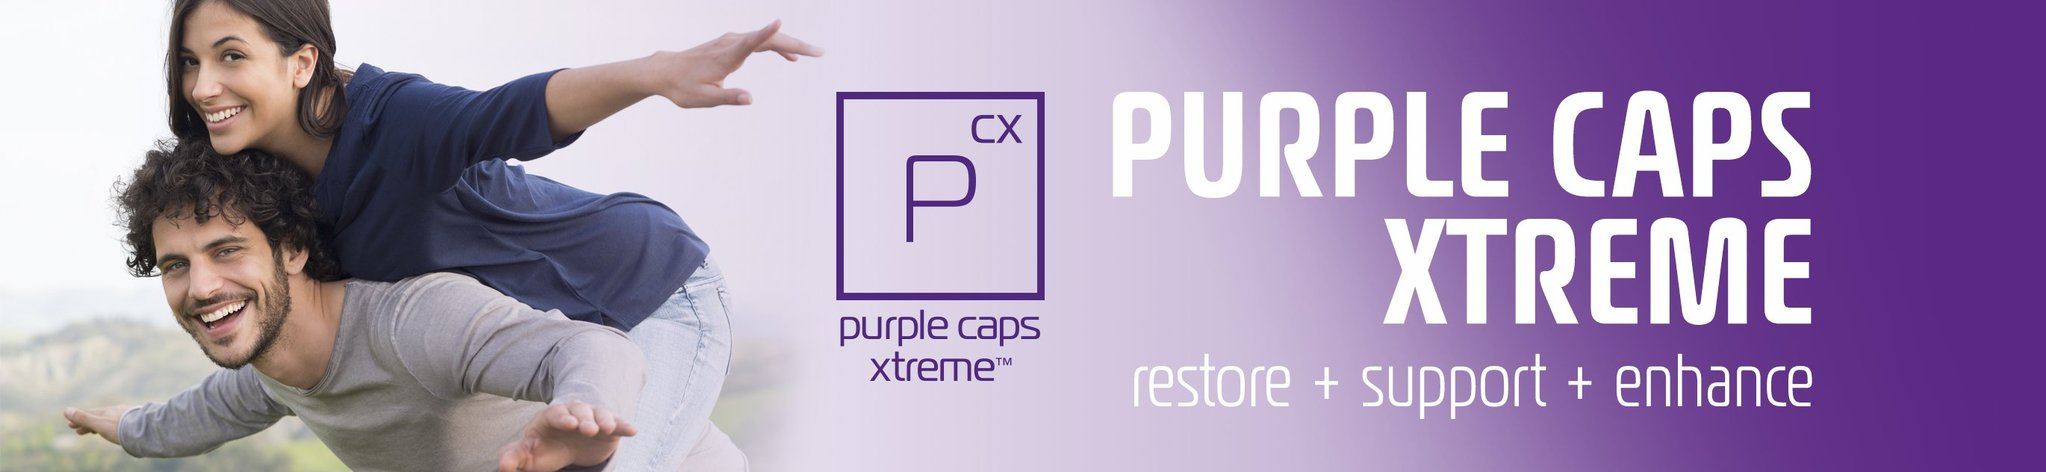 BHIP Purple Caps Xtreme Restore Support Enhance